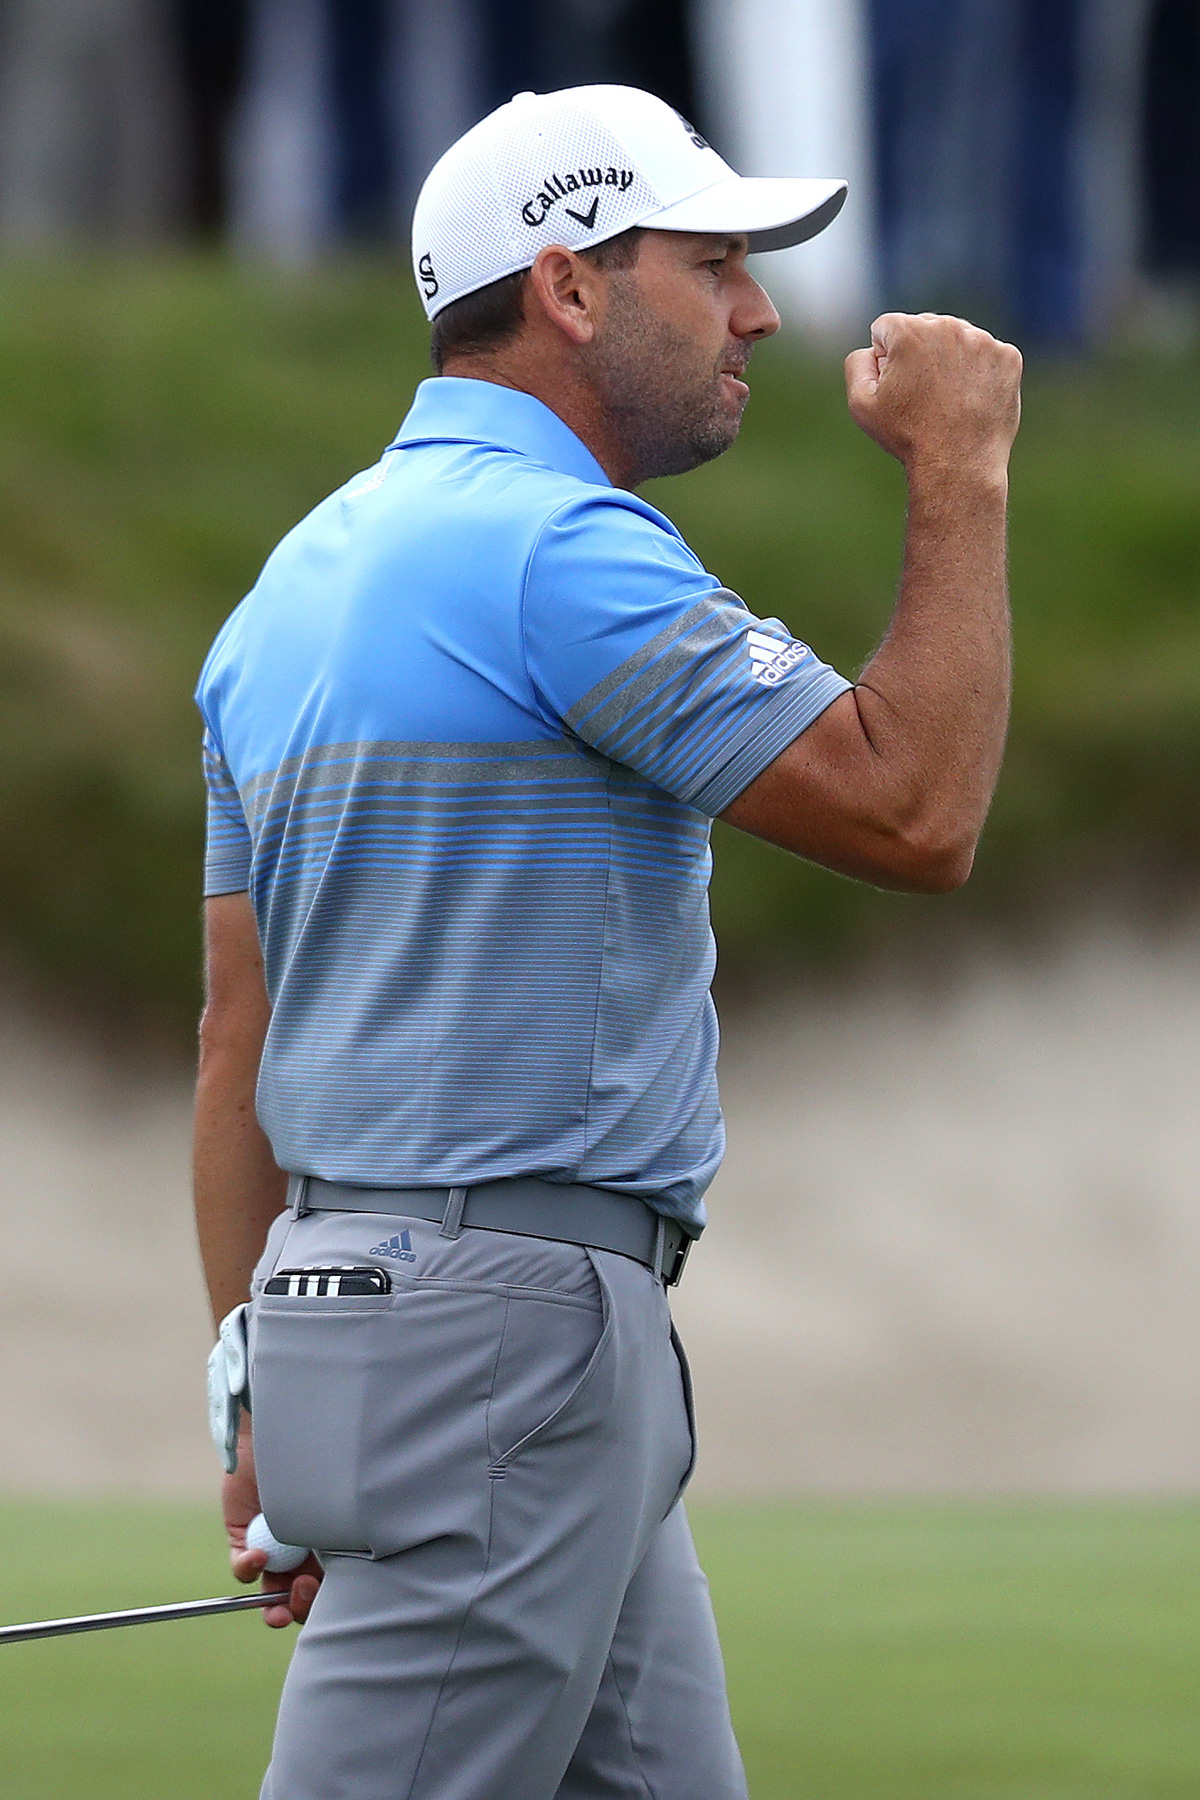 Sergio Garcia Closes Out His 16th Career European Tour Victory Player Profile Thumbnail